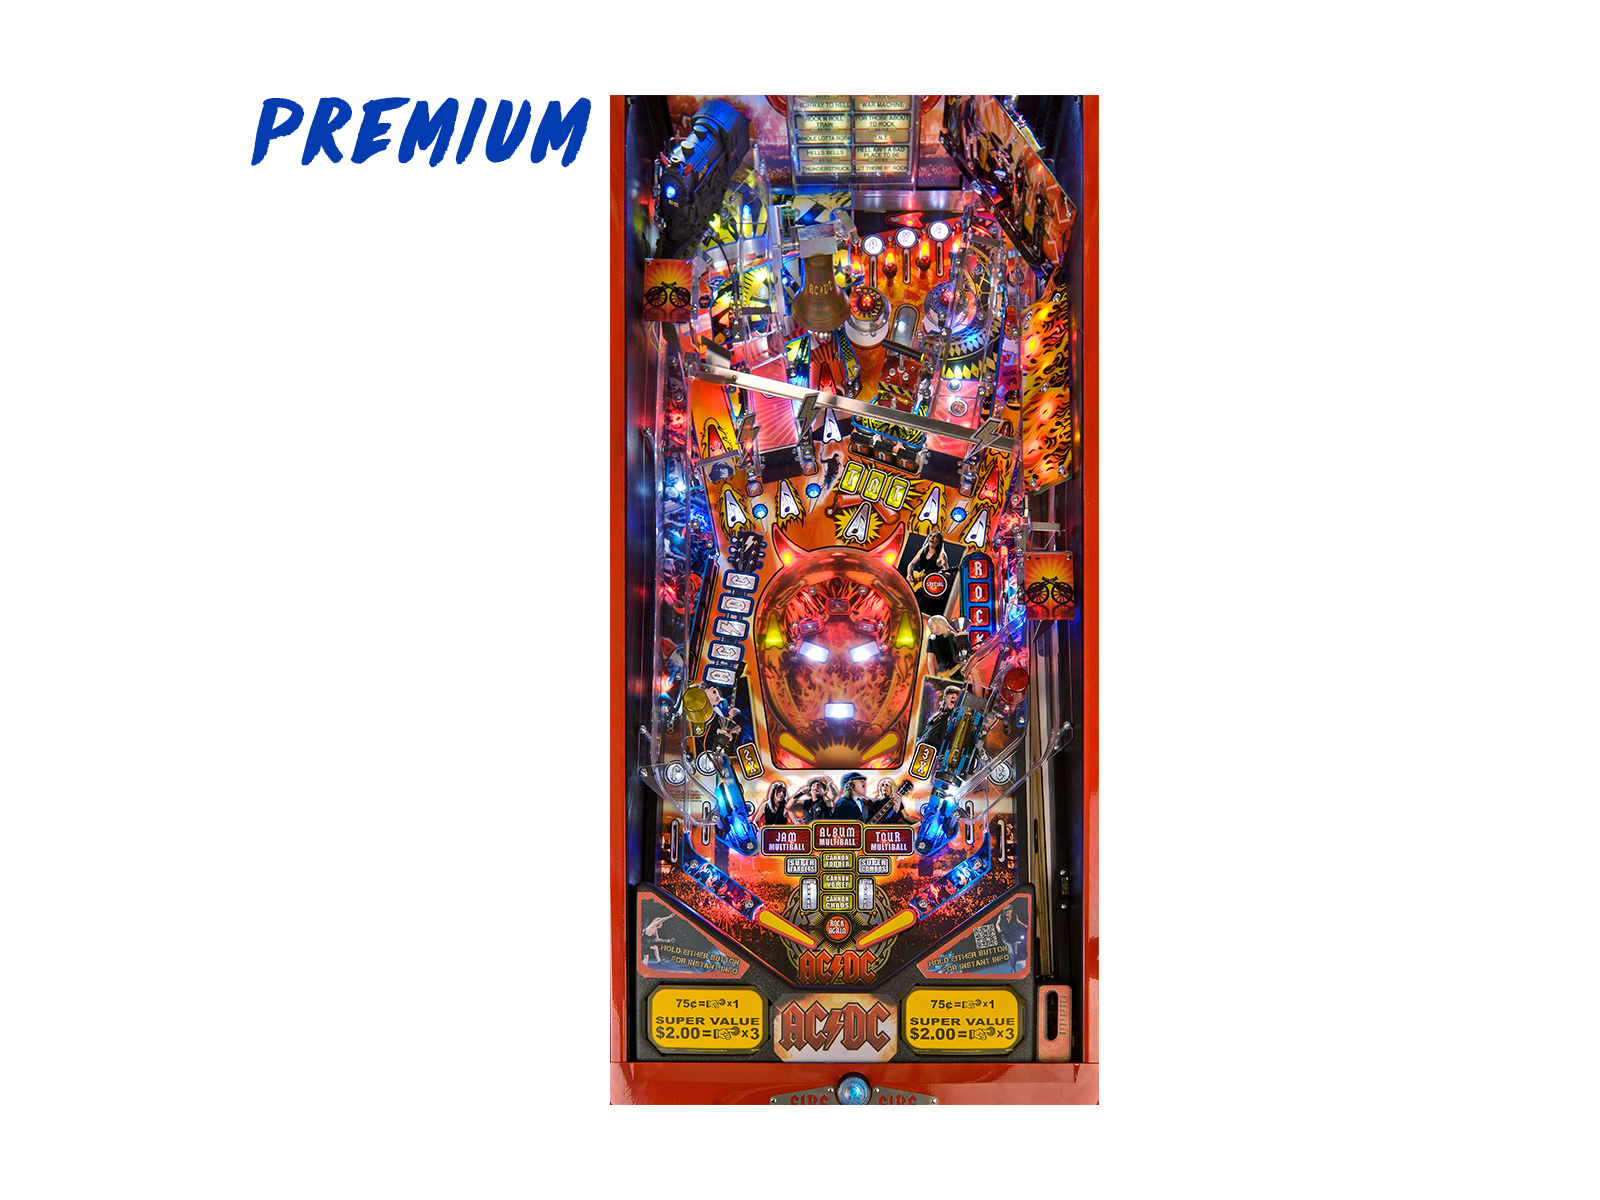 Acdc pinball premium edition playfield by stern pinball